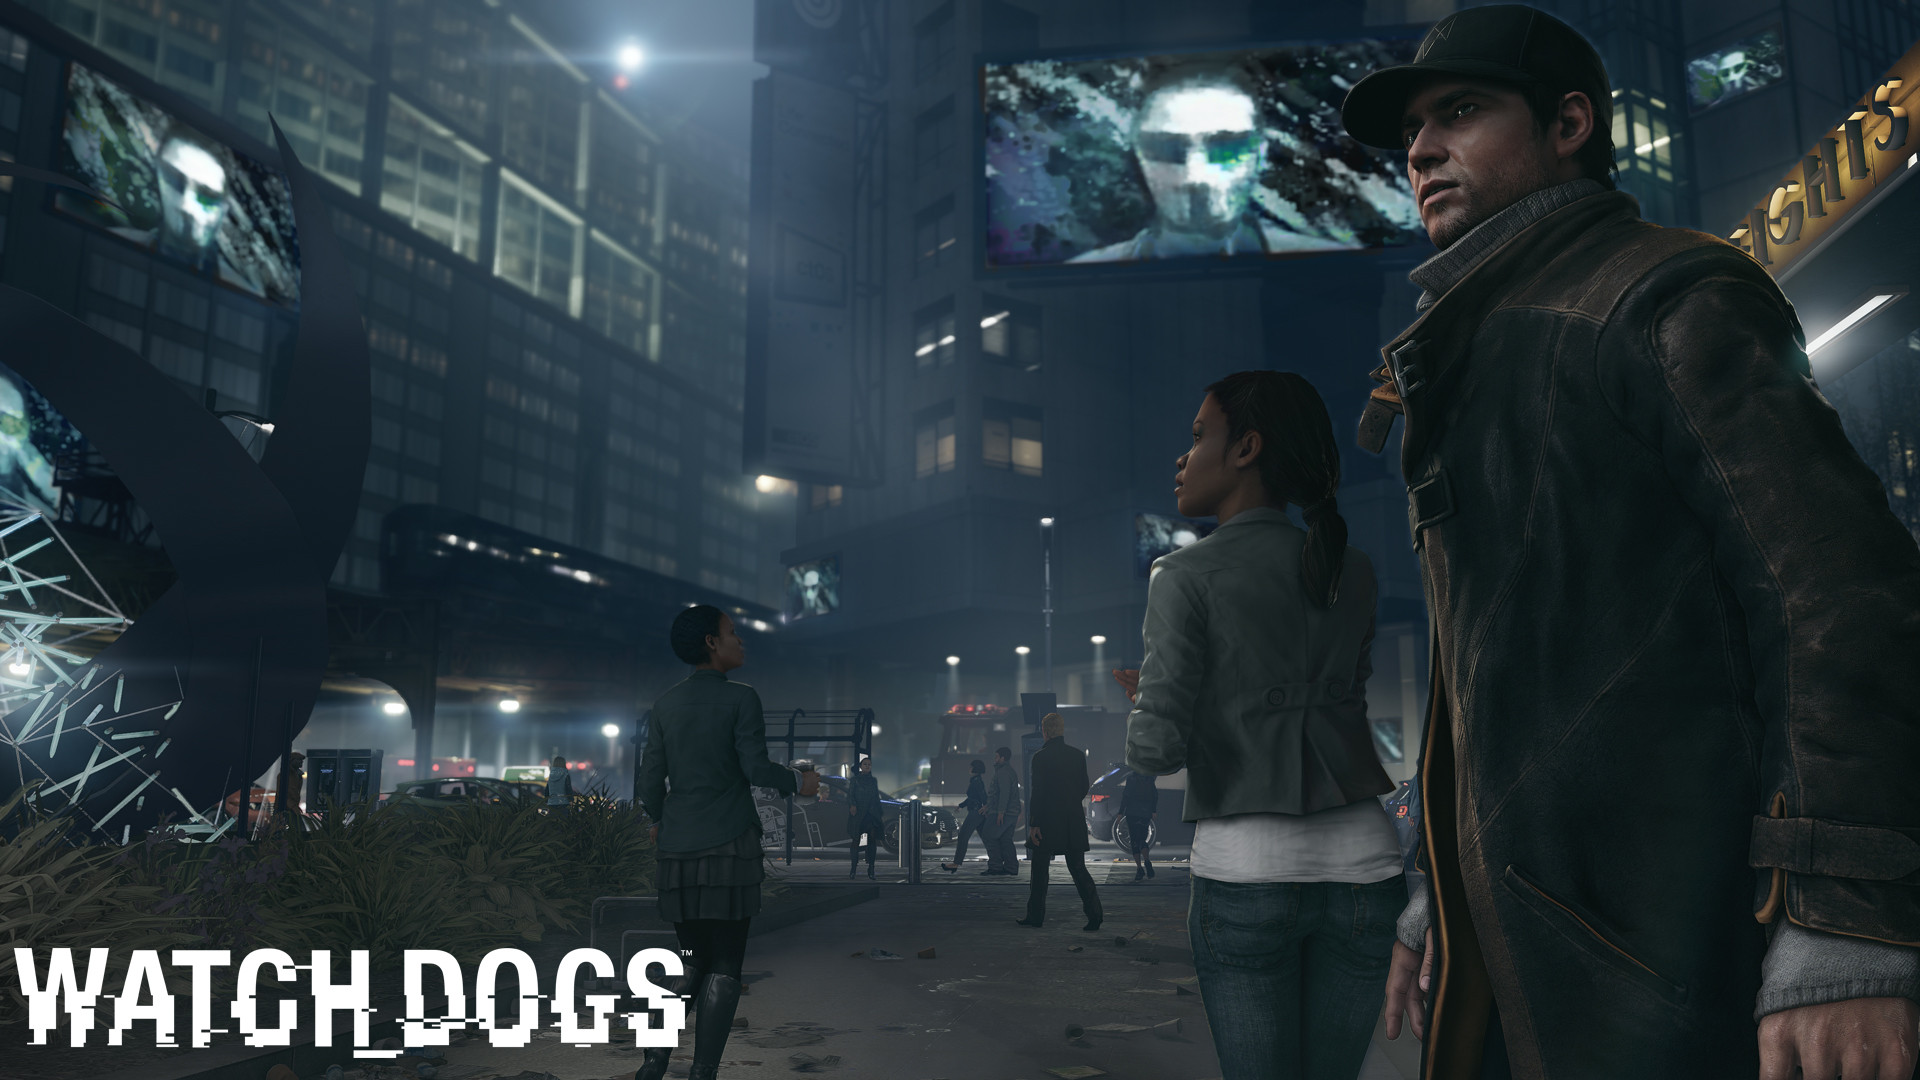 Watch_Dogs_nowhere_to_hide_1920x1080